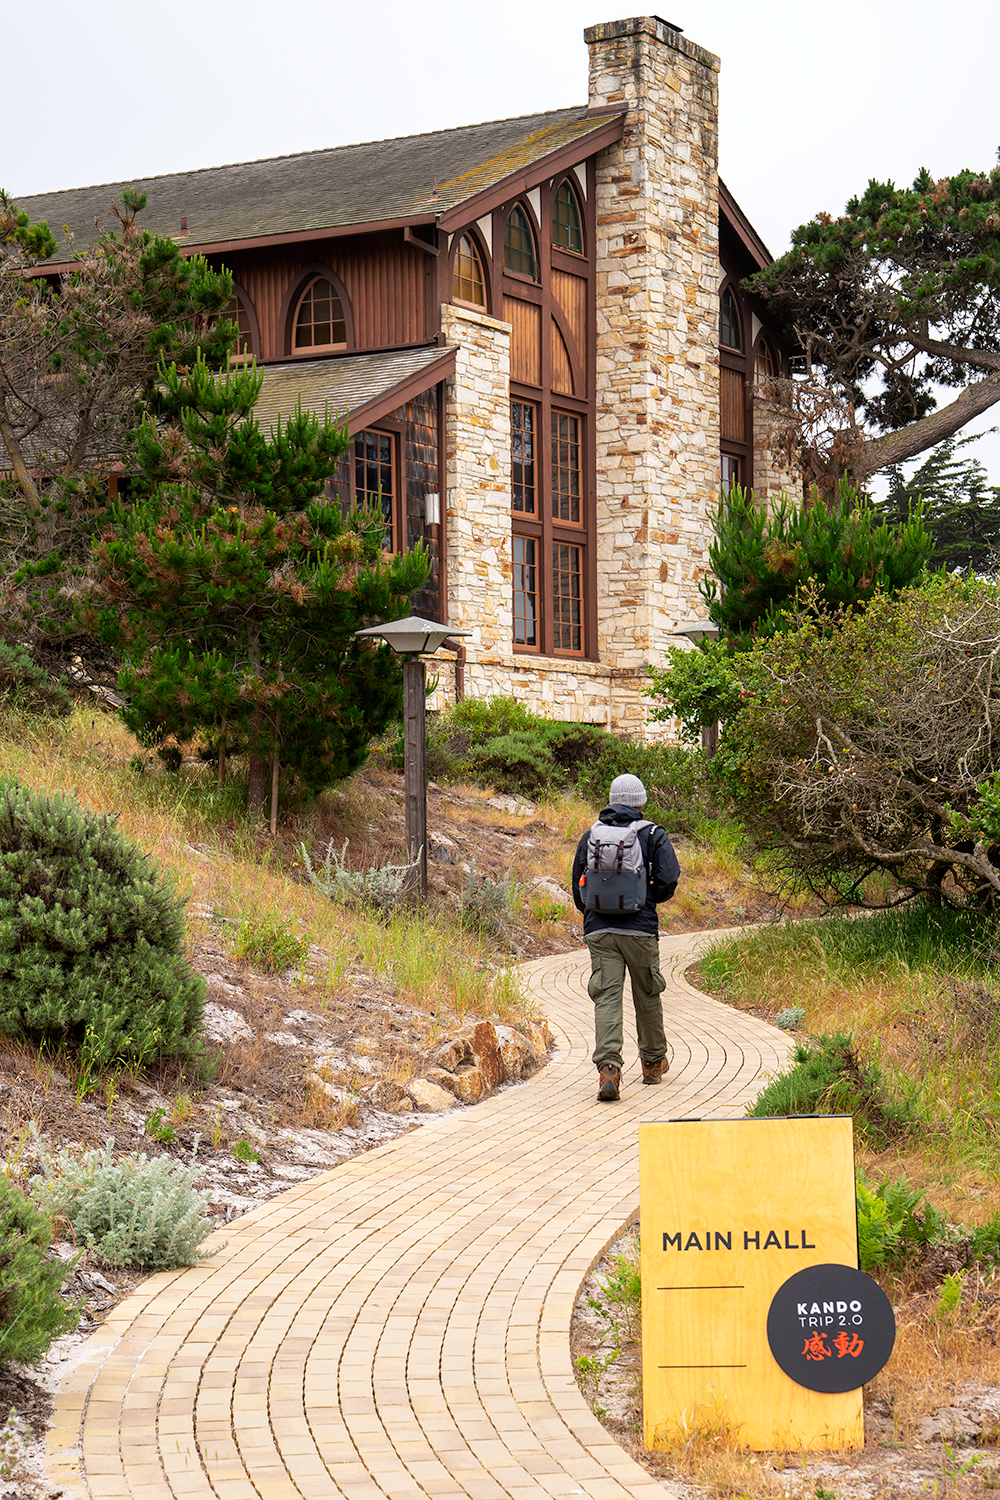 Asilomar was a great location for the event. This is the path to the main hall where there were instructors, vendors, and most importantly, free gear loaners from Sony!